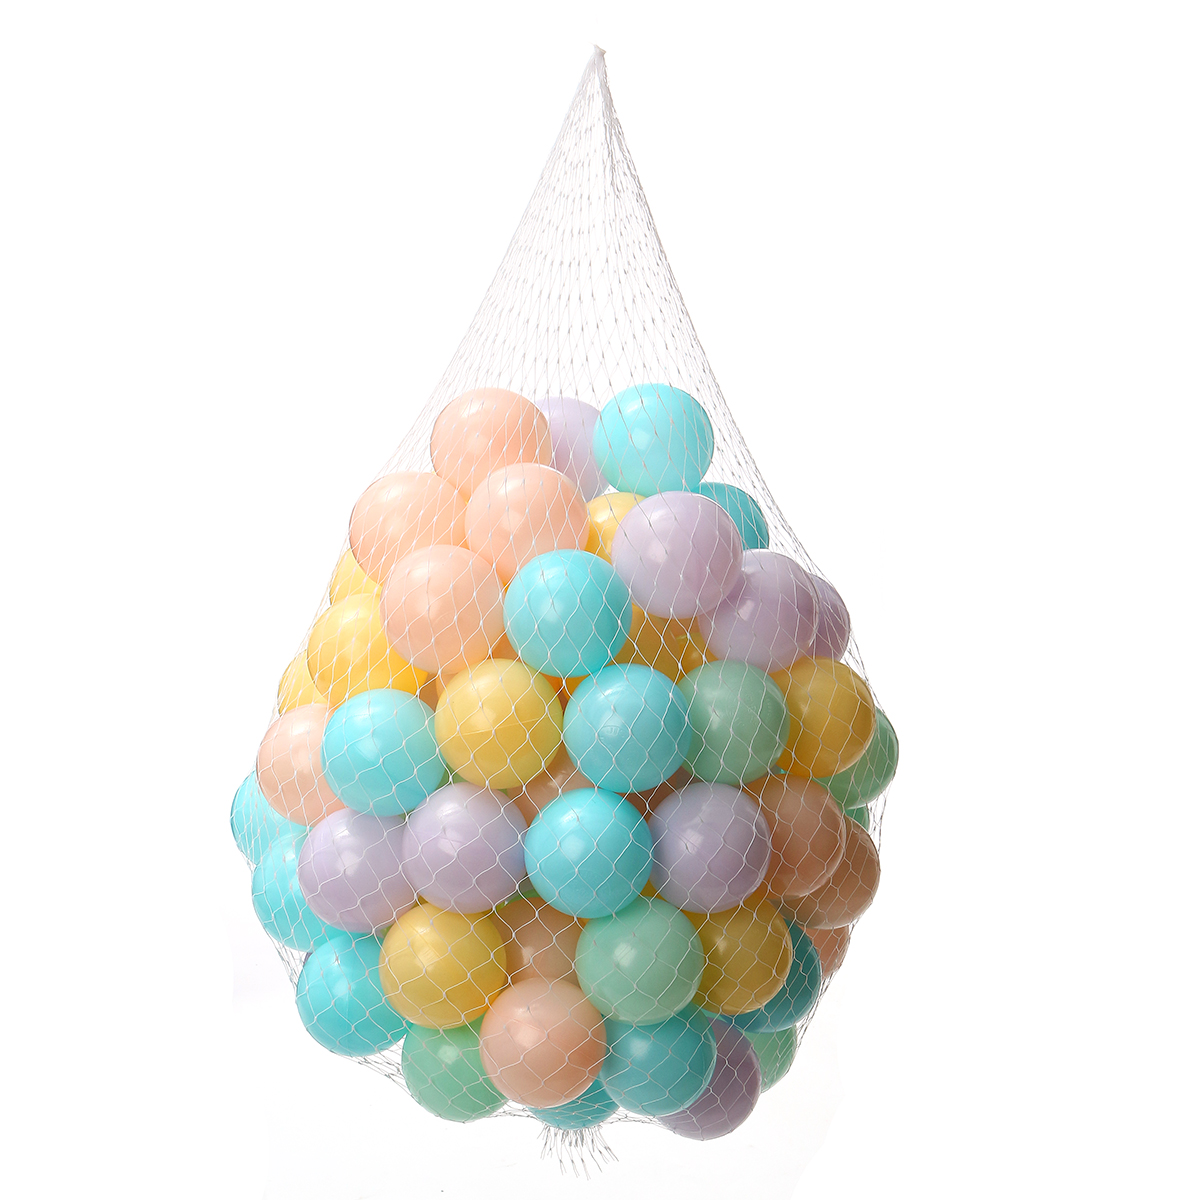 100PCS 6.5cm Water Pool Ocean Ball For Pit Pool Play Tent Soft PE 8 Colors Kids Swimming Novelties Toys